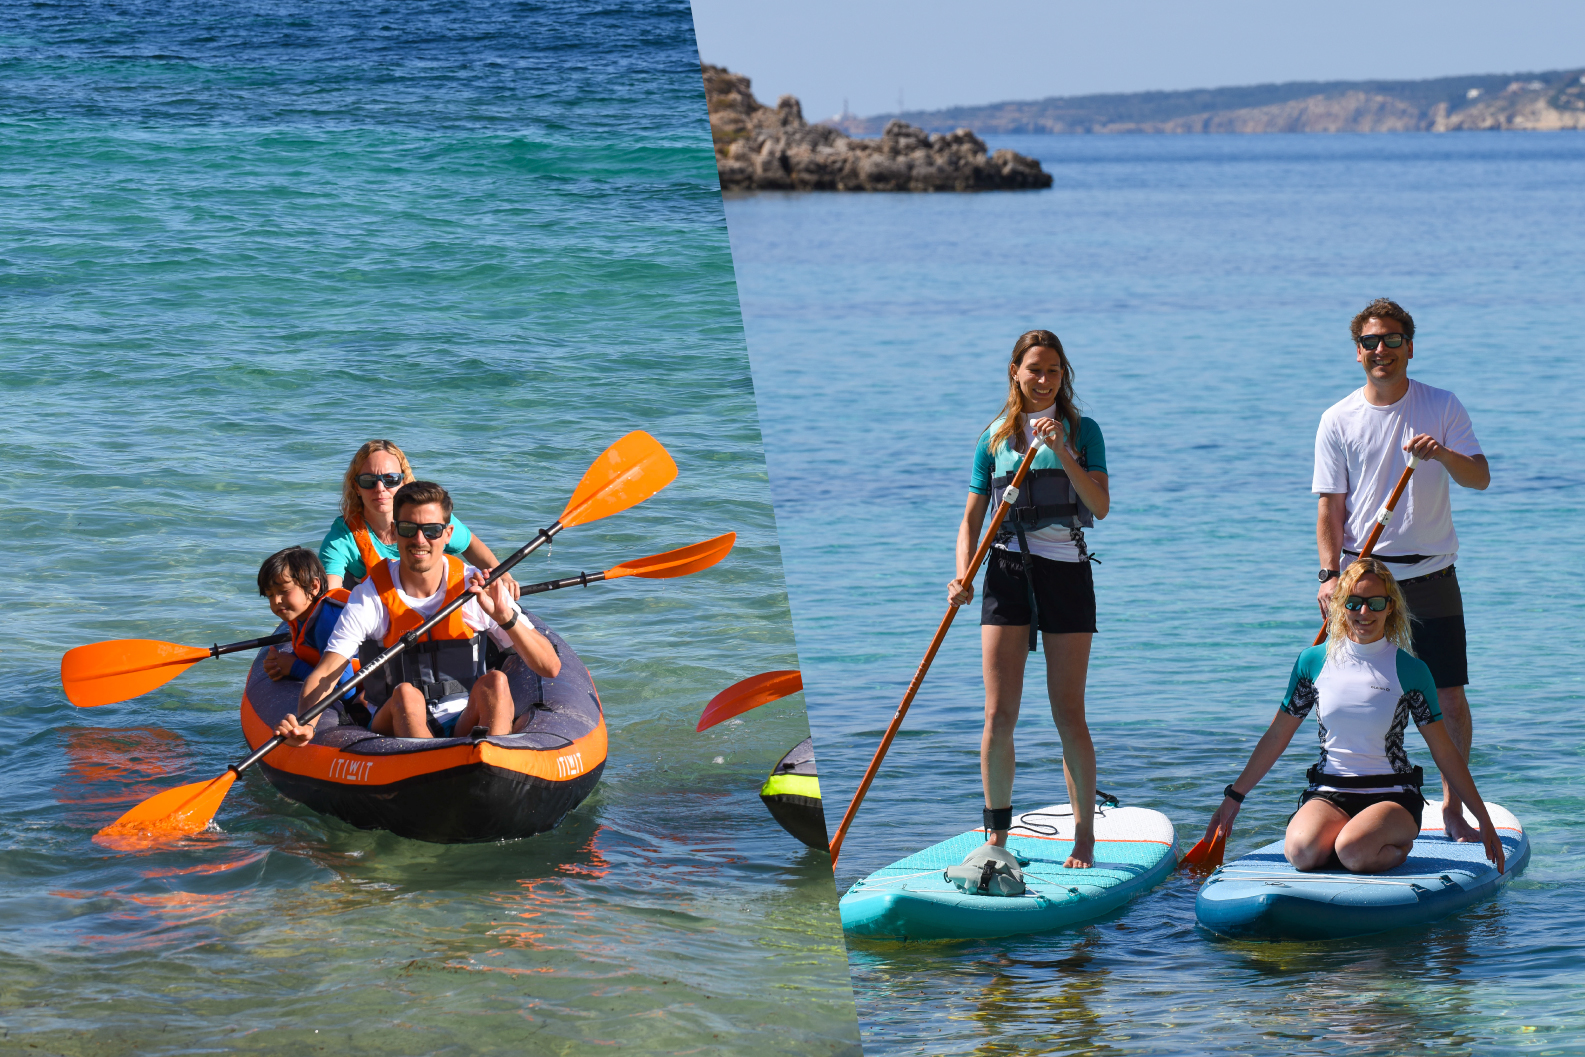 Inflatable watersports roducts available at Decathlon. Standup paddle board, kayaking